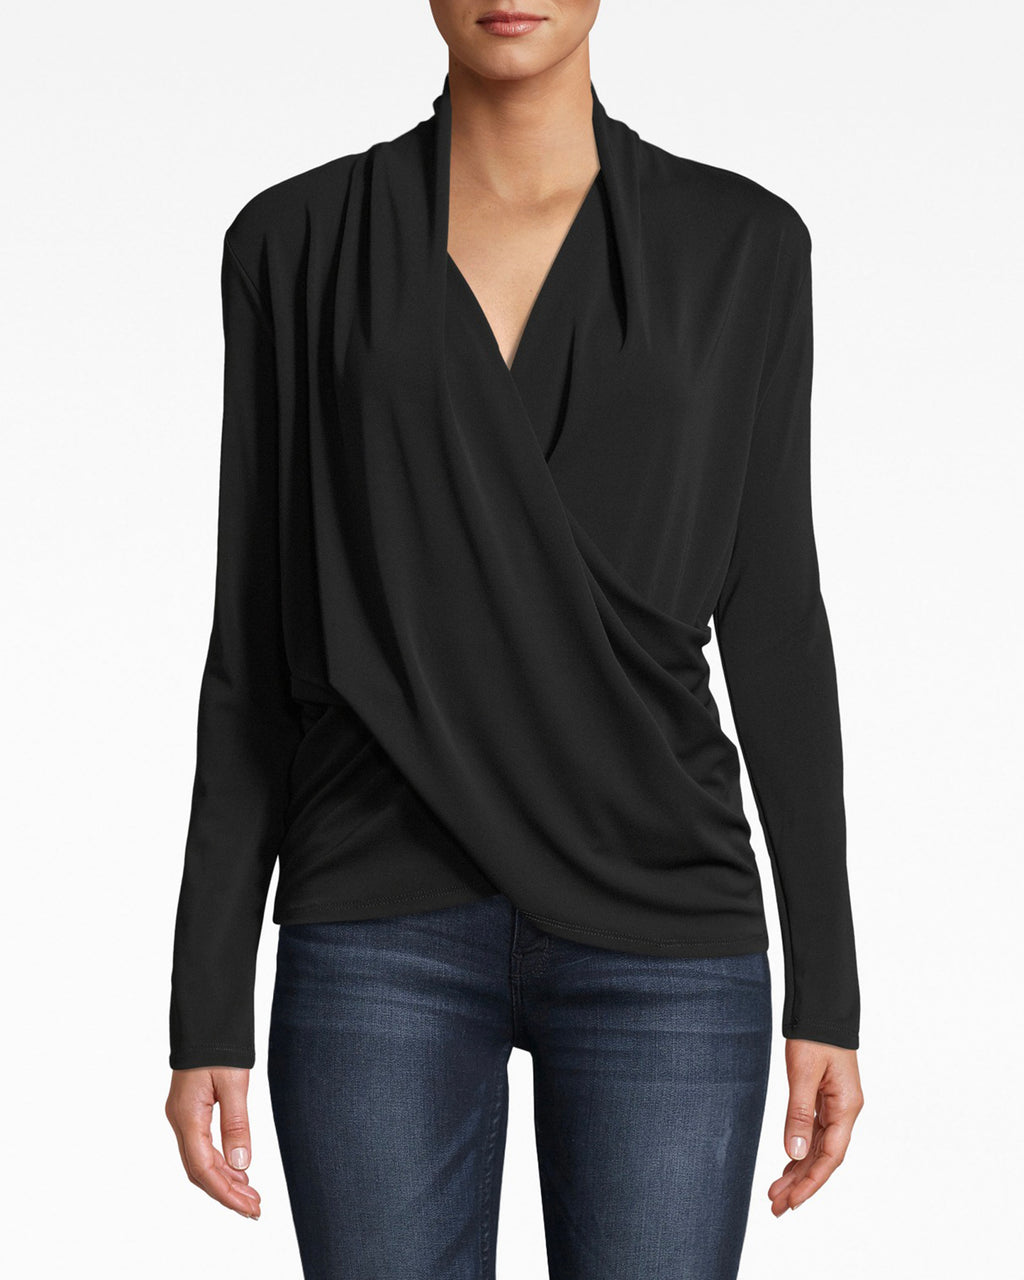 BC10299 - STRETCHY MATTE JERSEY LONG SLEEVE DRAPEY TOP - tops - shirts - Drapey chic. The long sleeves on this jersey top are a streamlined complement to the v neck and slight collar.